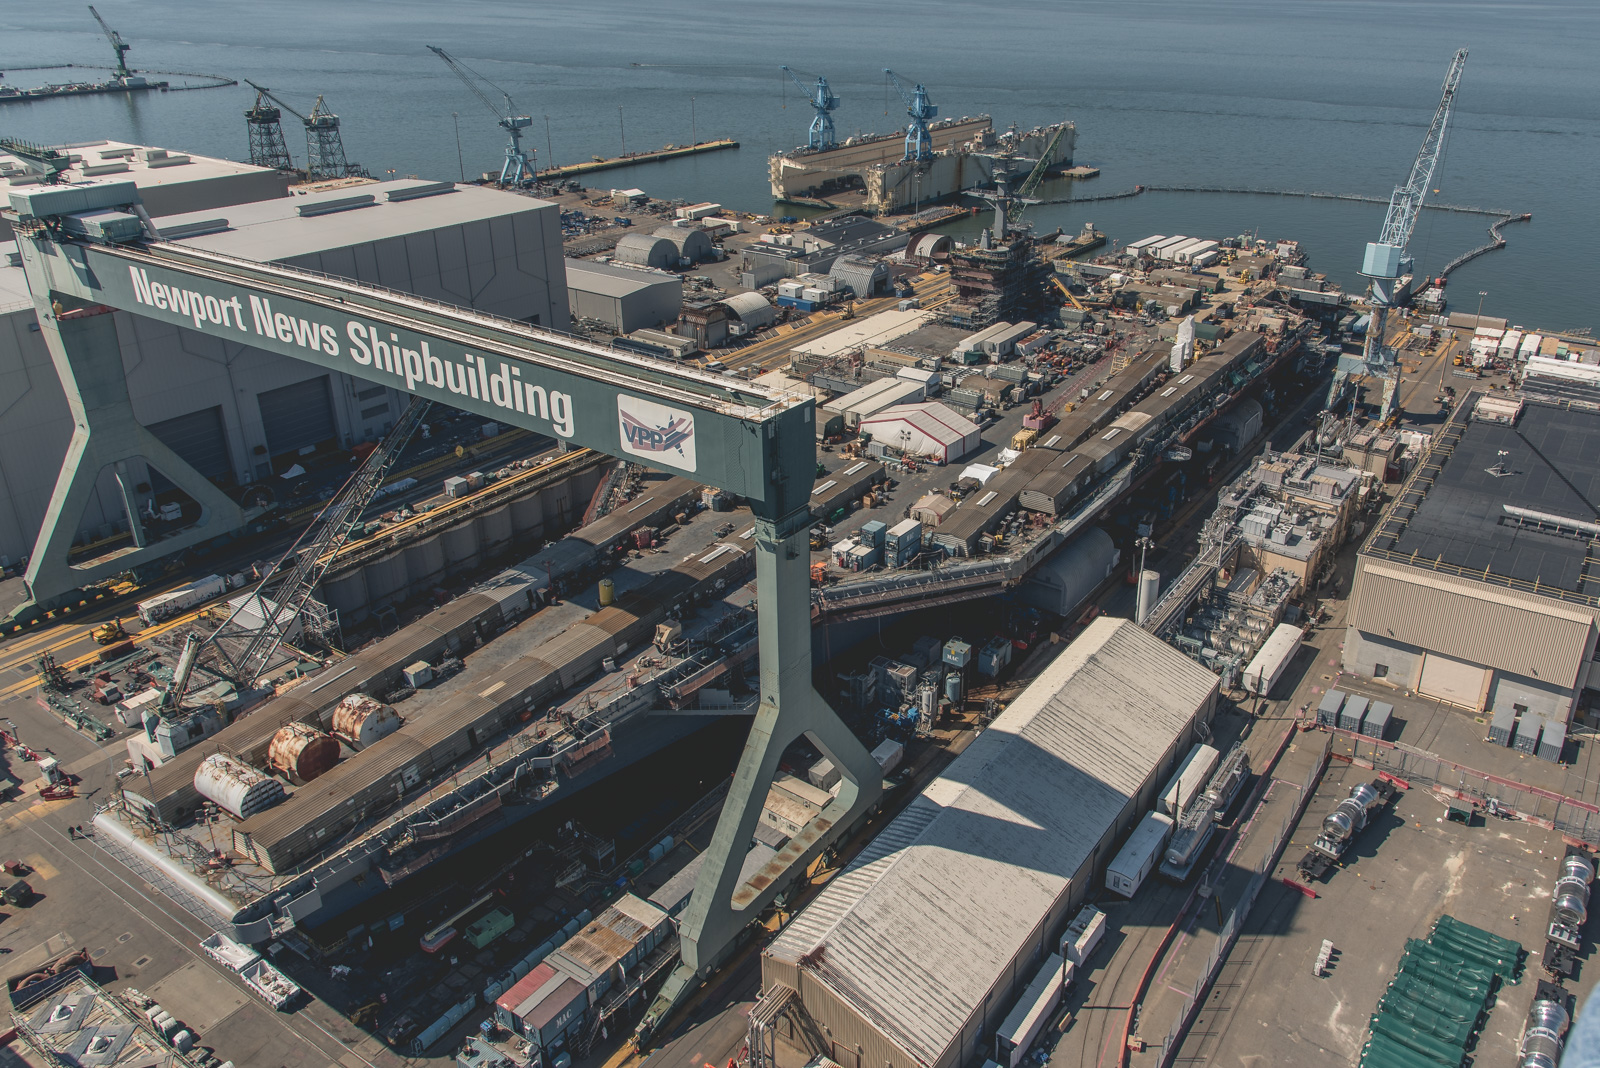 USS George Washington (CVN 73) approaches the end of dry dock work as part of its refueling and complex overhaul. Once the dry dock work is complete, the aircraft carrier will be moved to a nearby outfitting berth for final outfitting and testing.